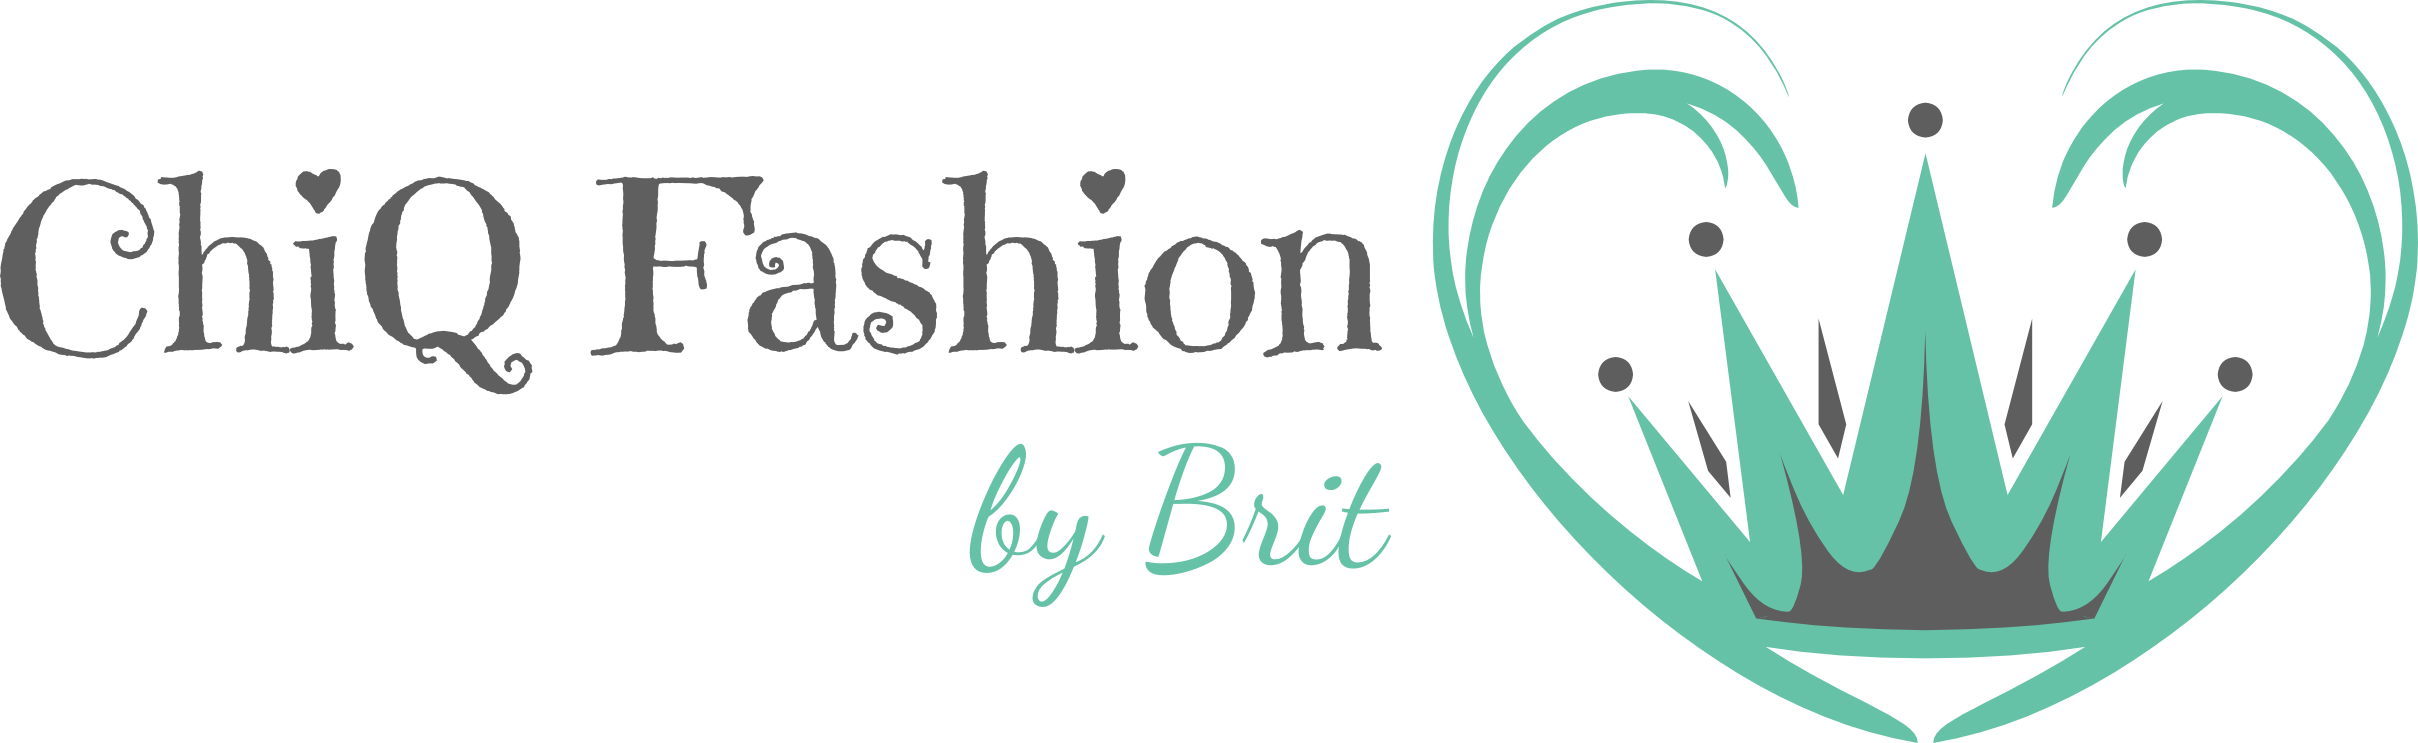 ChiQ Fashion by Brit